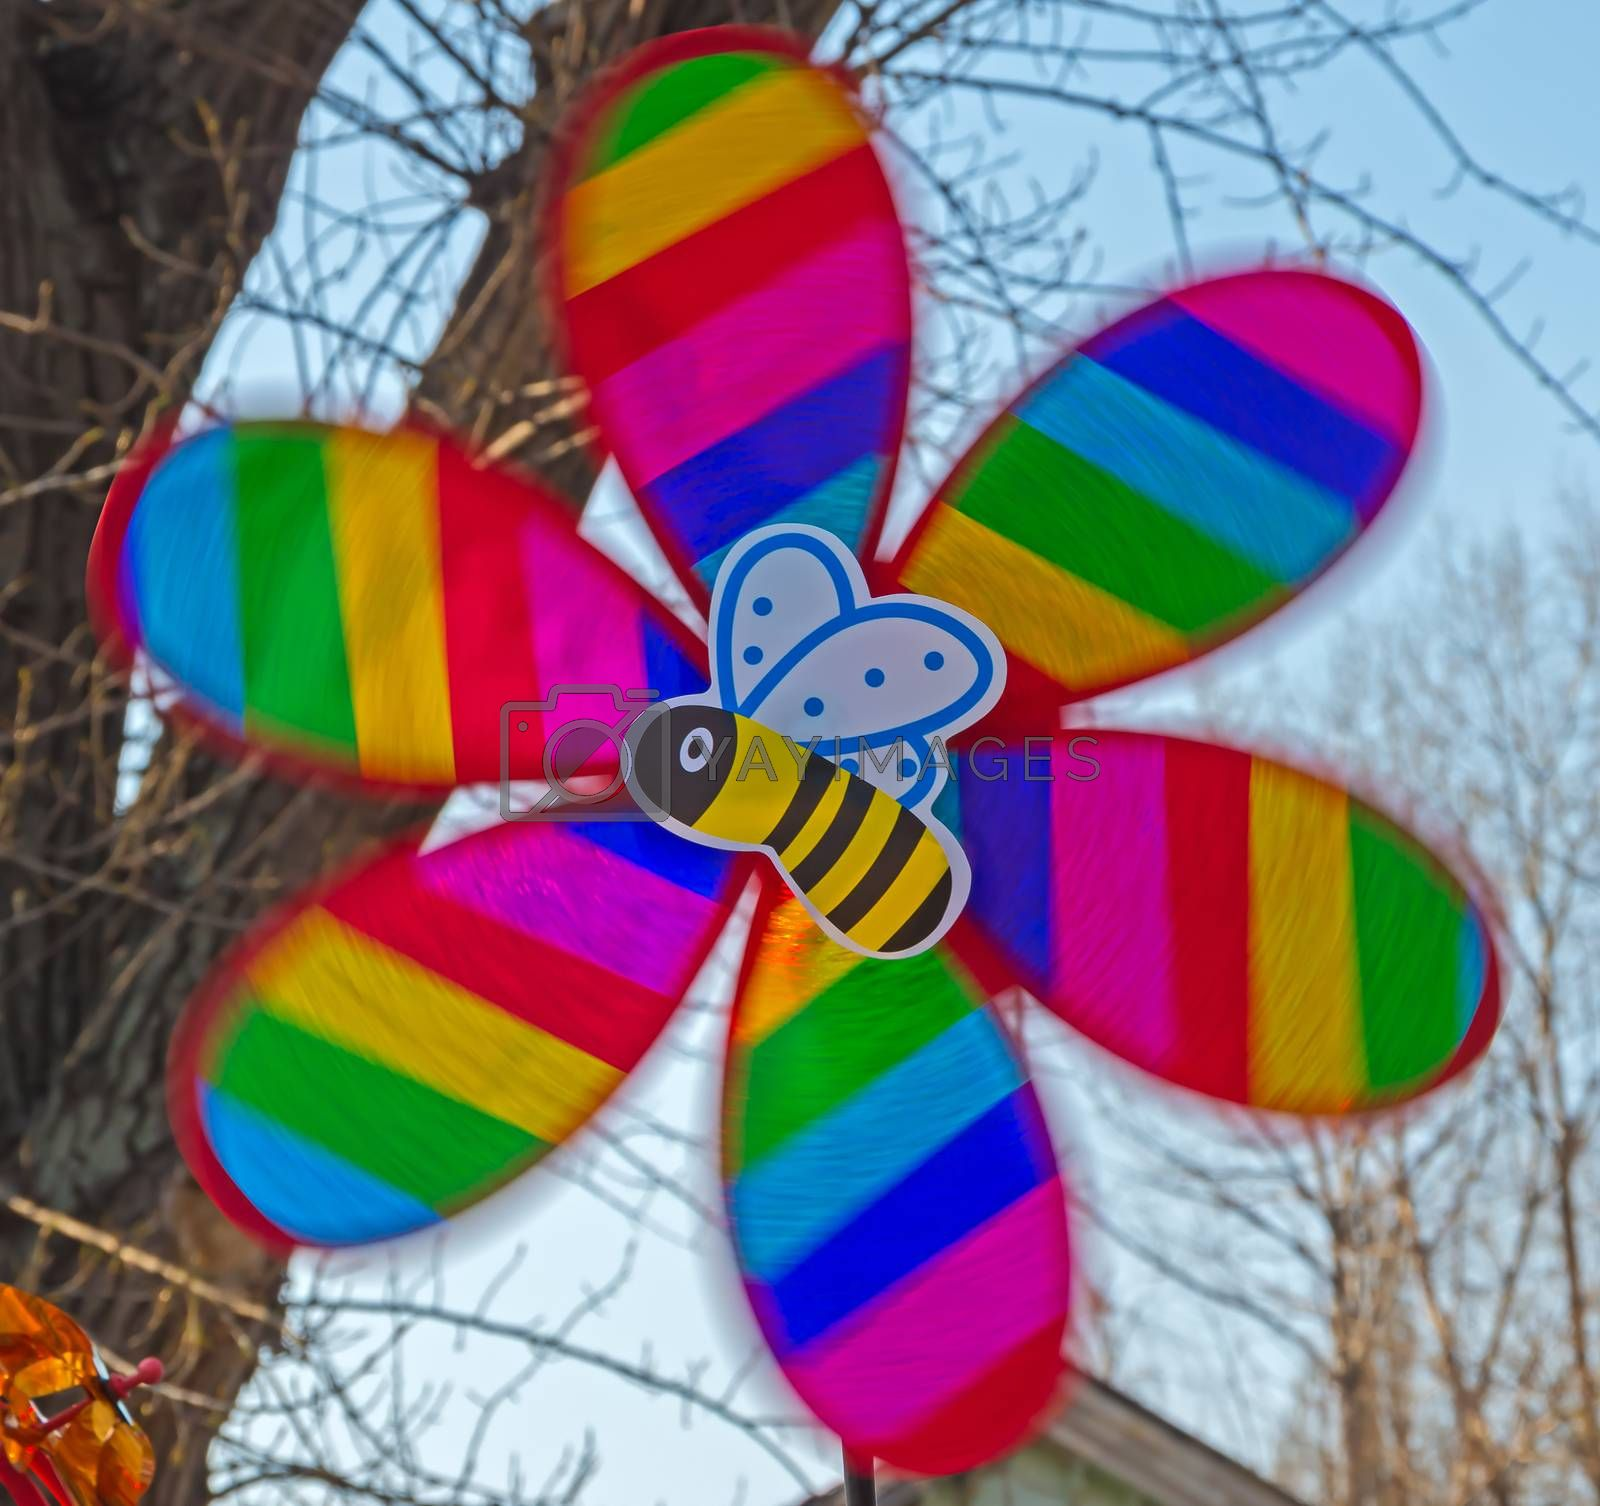 Children's multi-colored toy in the form of a propeller and bee in motion